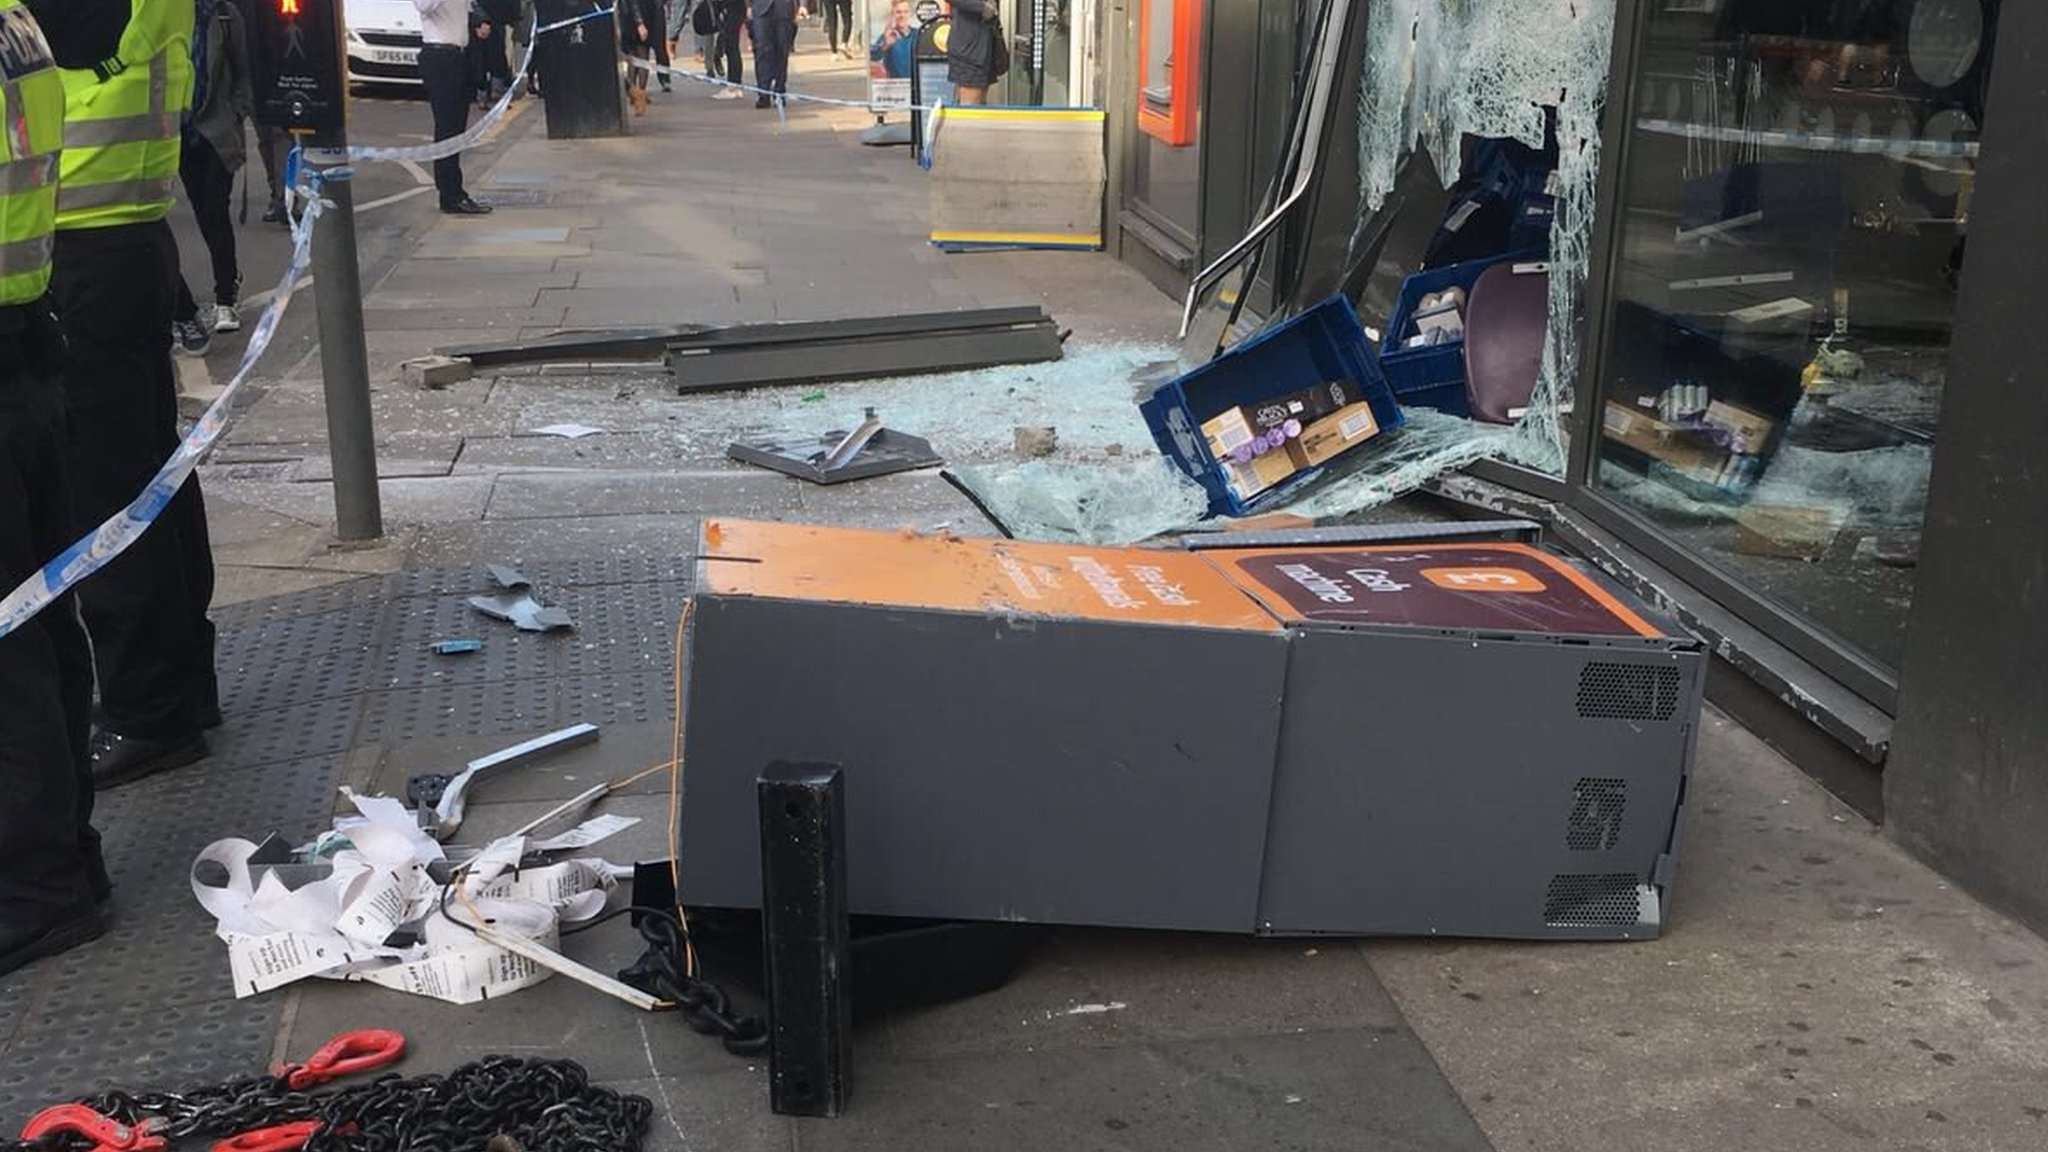 Men in balaclavas remove ATM from Sainsbury's wall